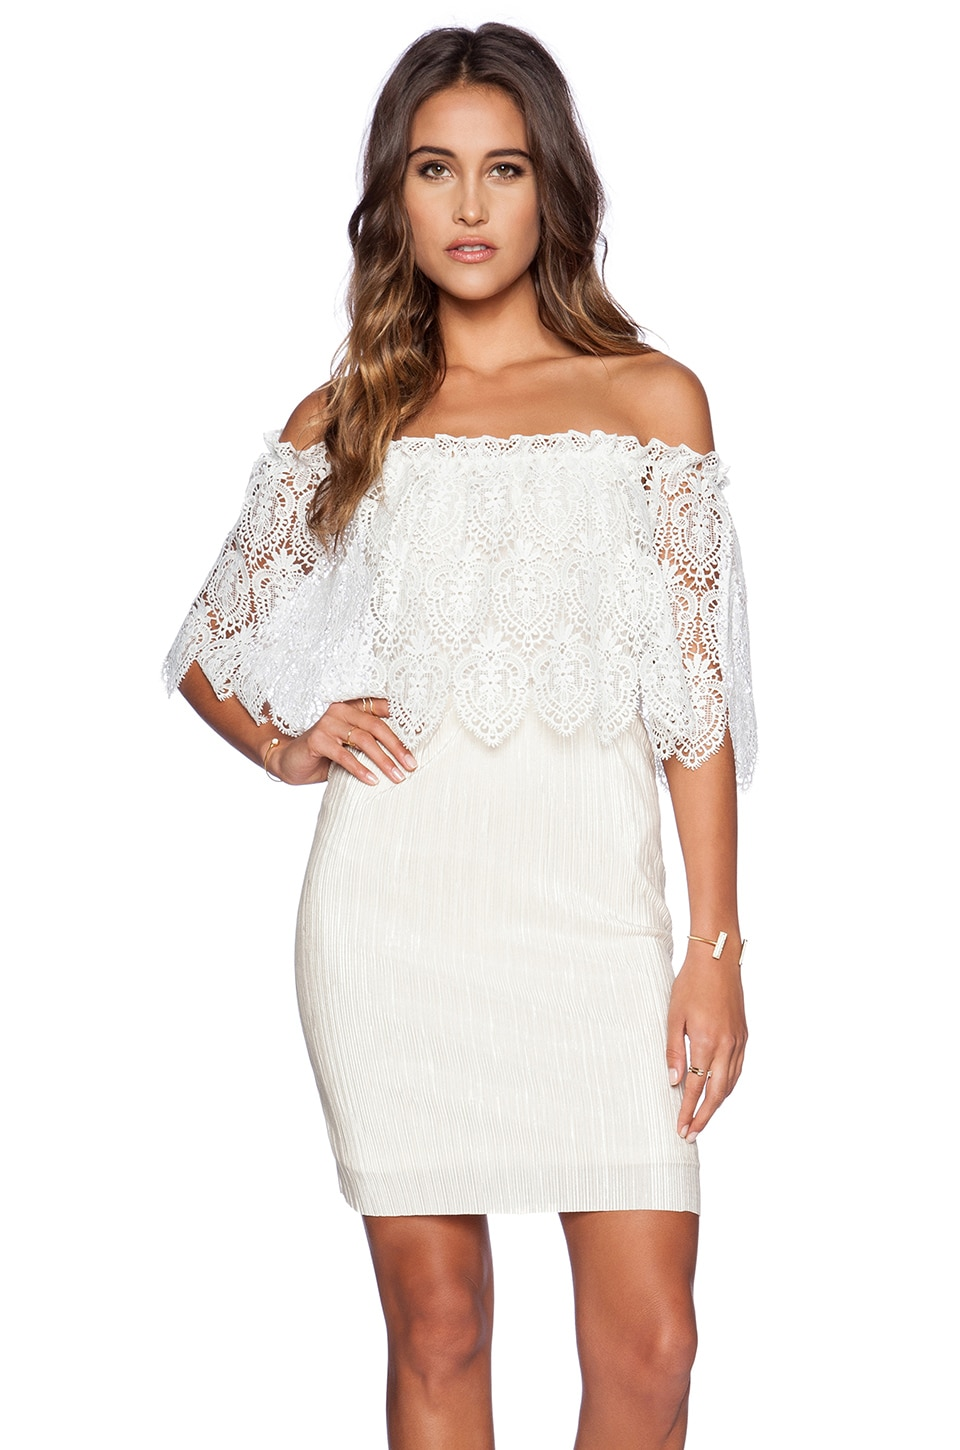 OH MY LOVE Grecian Mini Dress in Ivory & White Lace